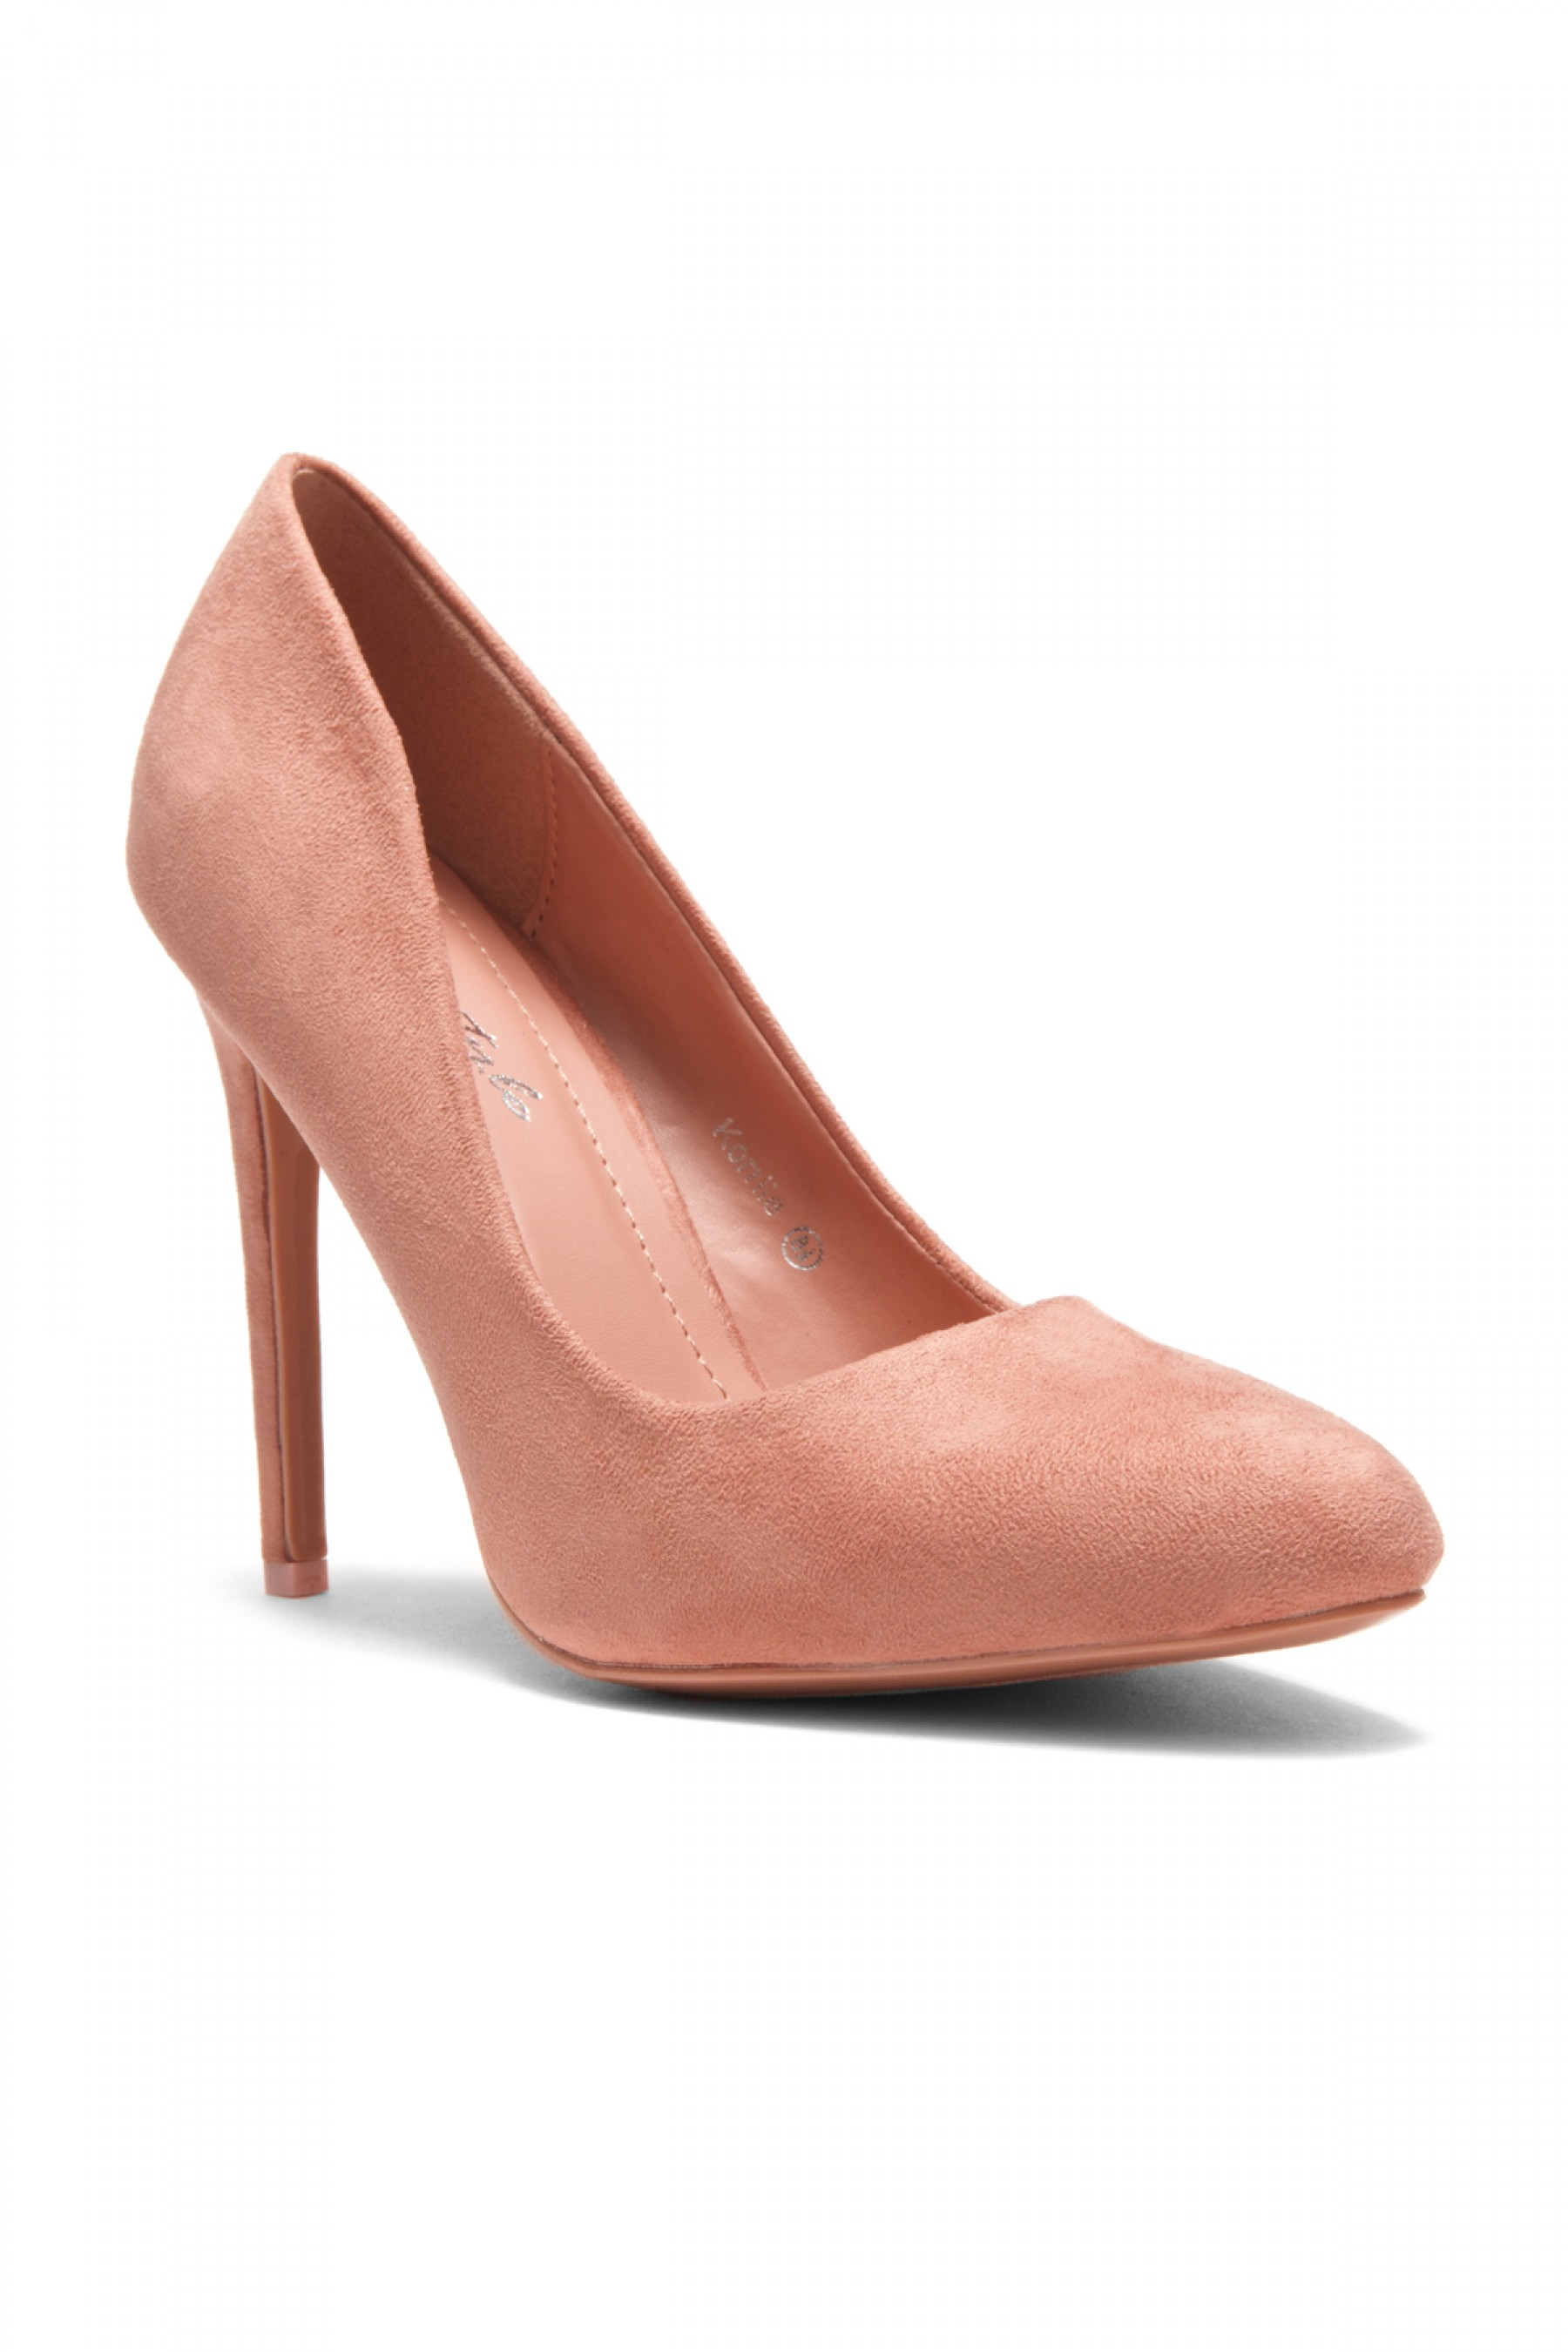 c445eef42bba HerStyle Women s Manmade Korriie Faux Suede Almont Toe Stiletto Pump -Mauve